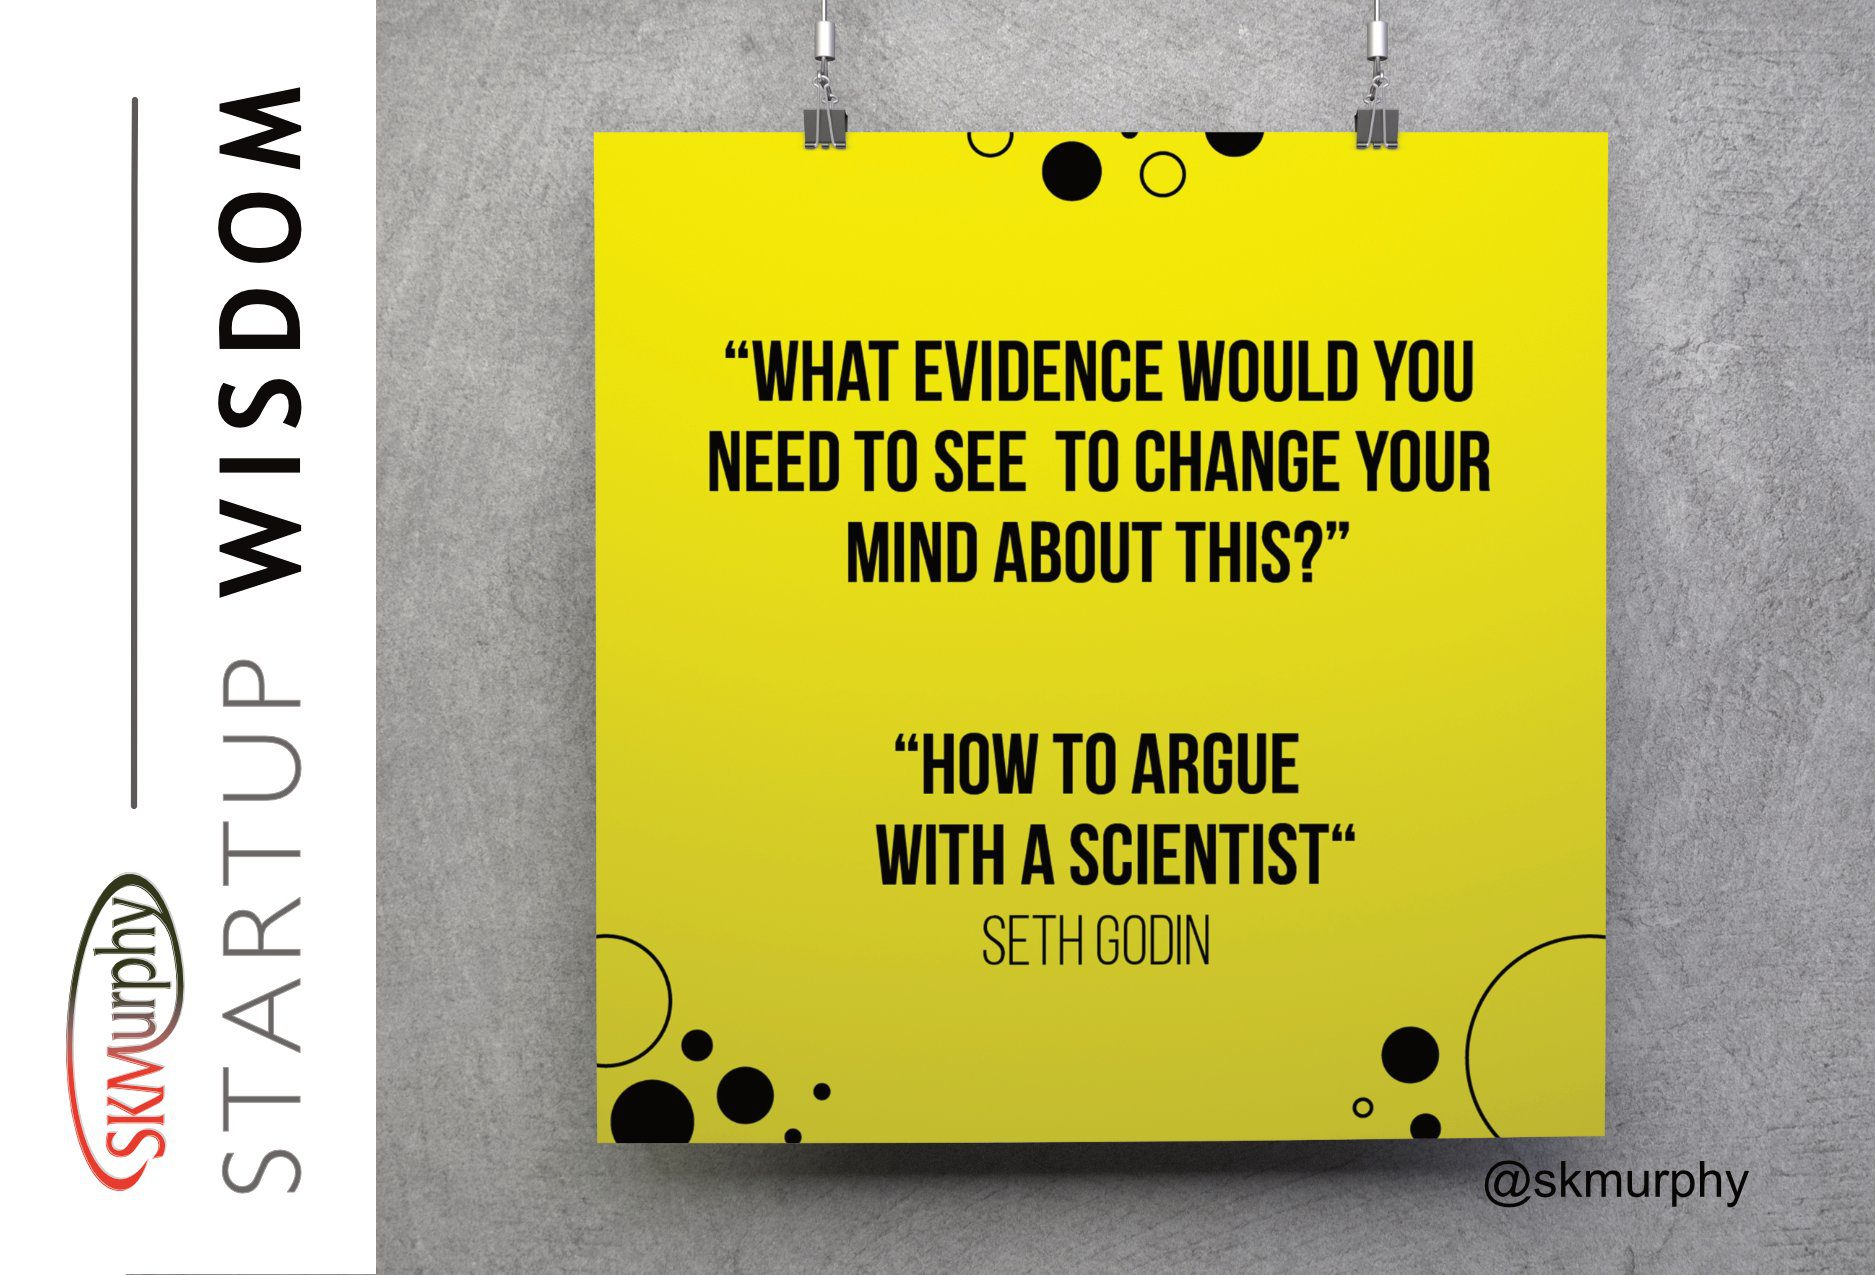 What Evidence Would You Need to Change Your Mind About This? Seth Godin